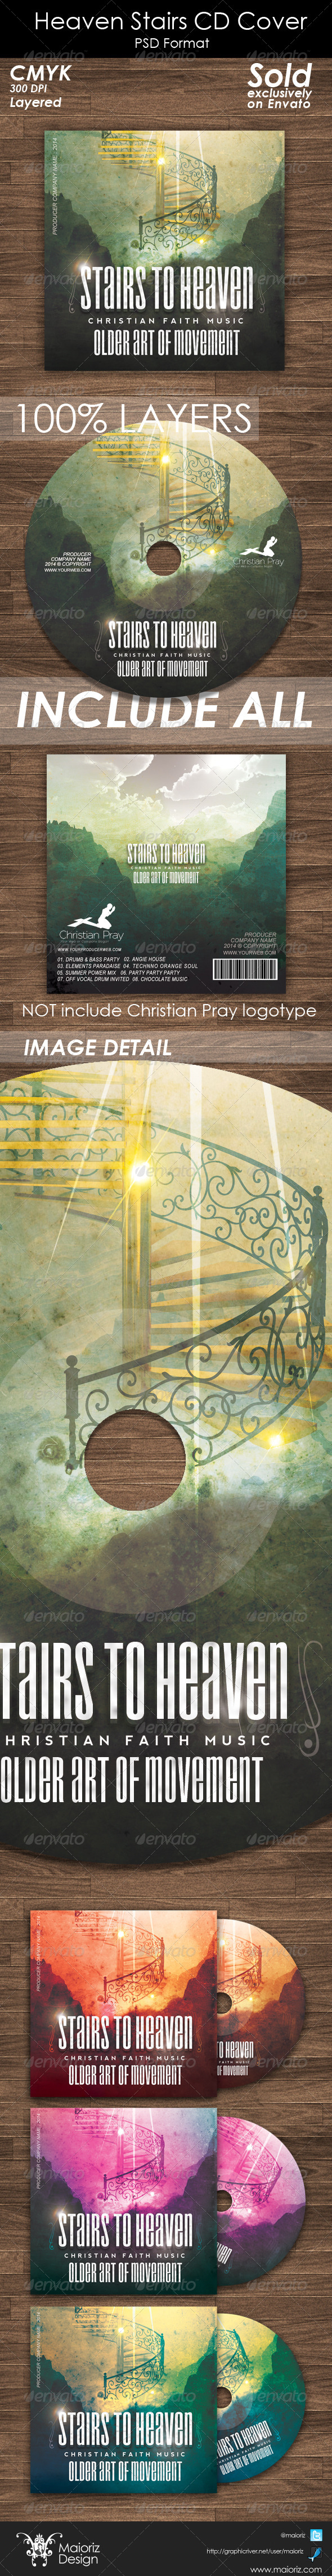 Heaven Stairs CD Cover Artwork - CD & DVD Artwork Print Templates